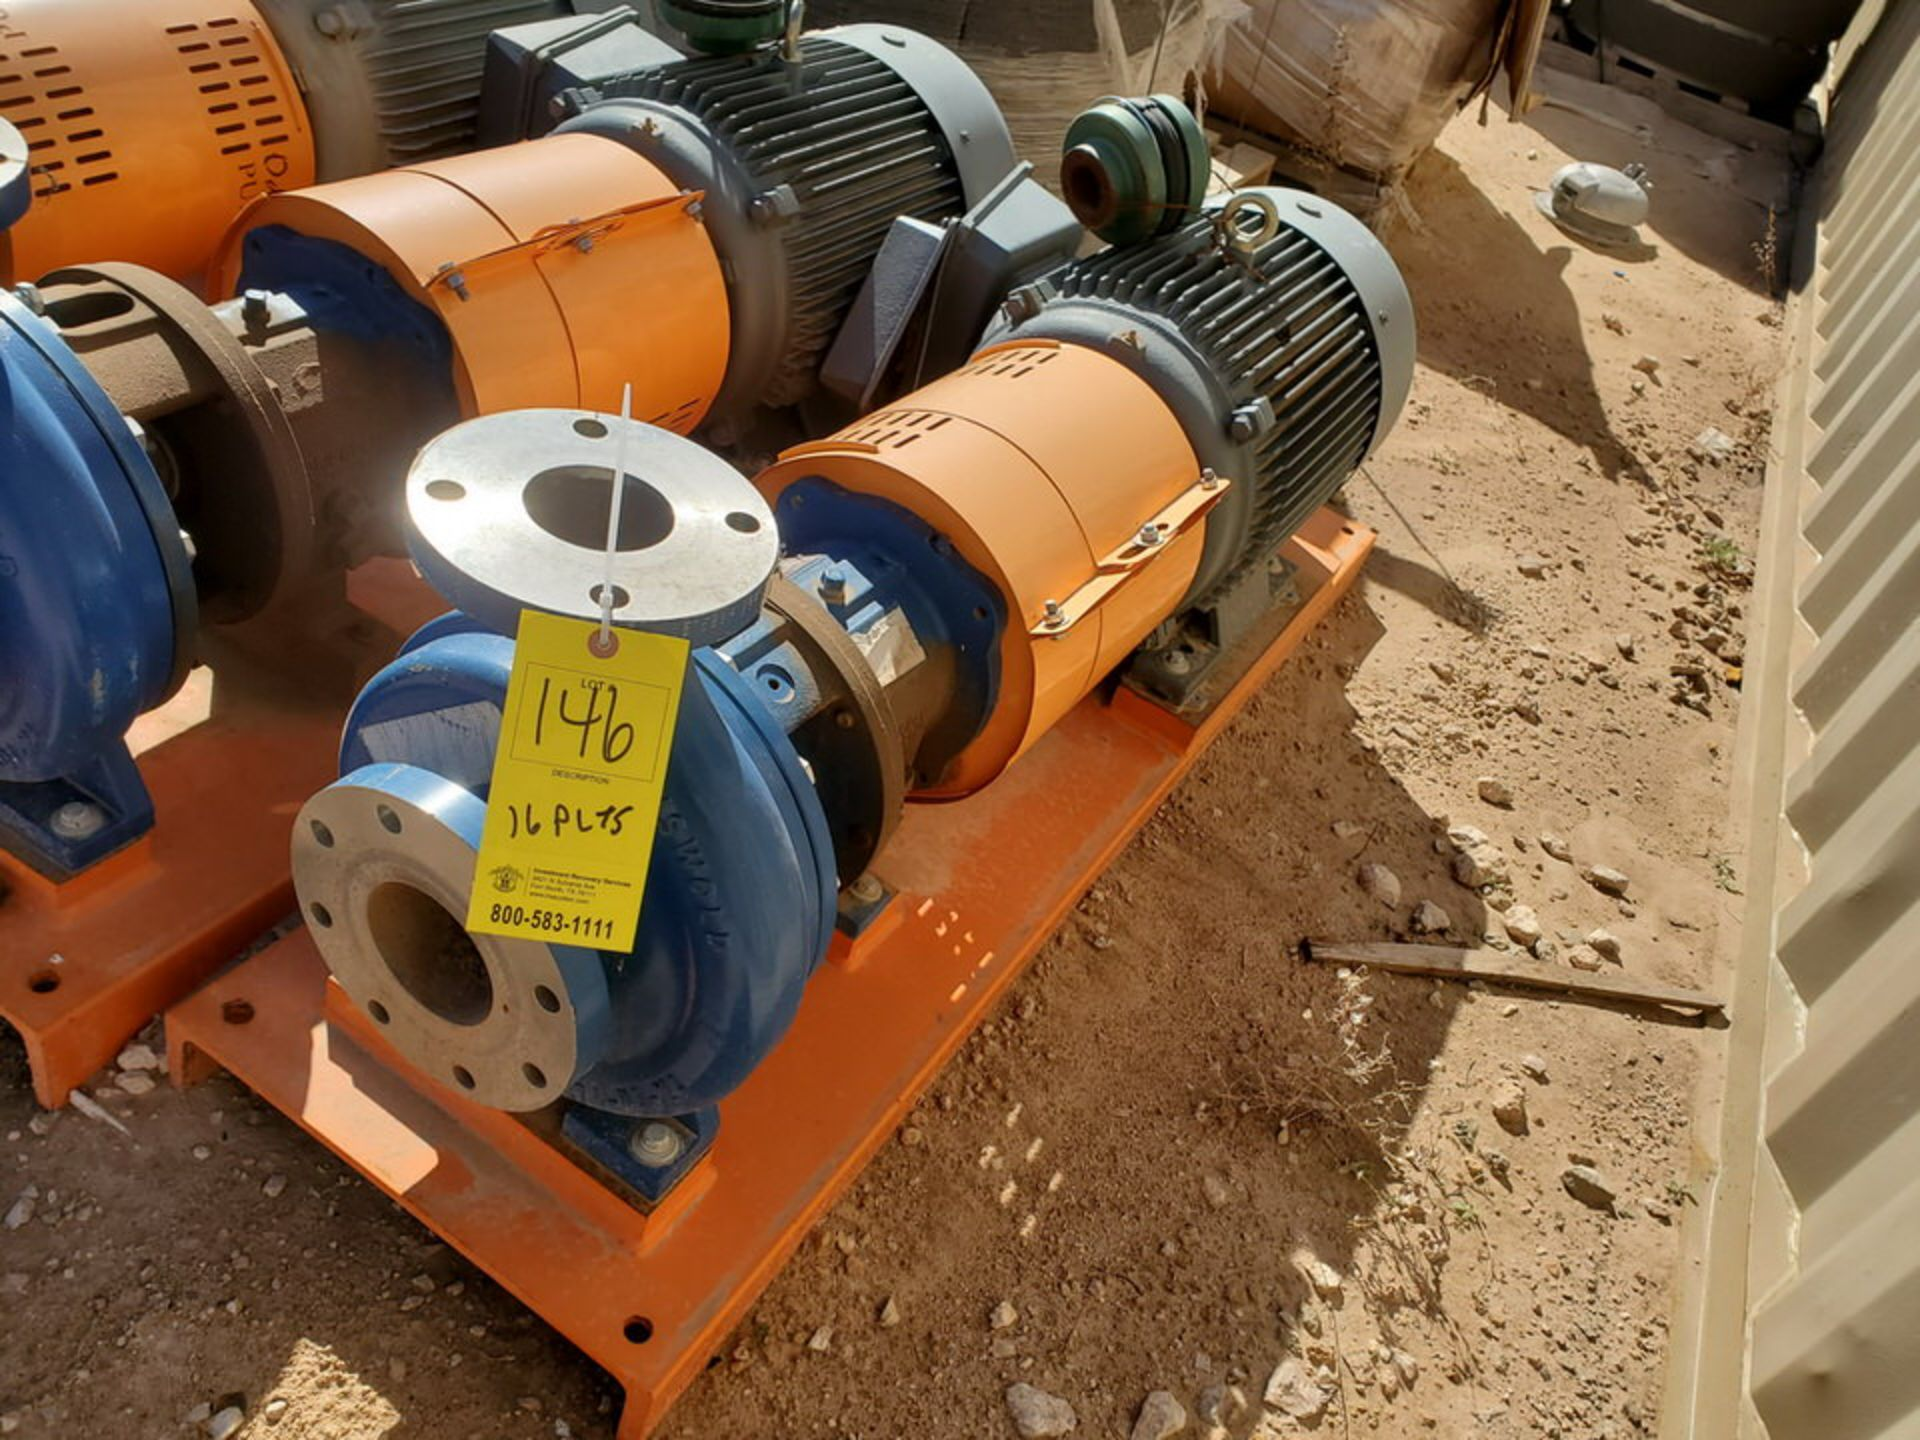 2019 Griswold 811M Centrifugal Pump Size: 4 x 3-10, 7.83 Imp Dia; W/ 50HP Motor - Image 3 of 8